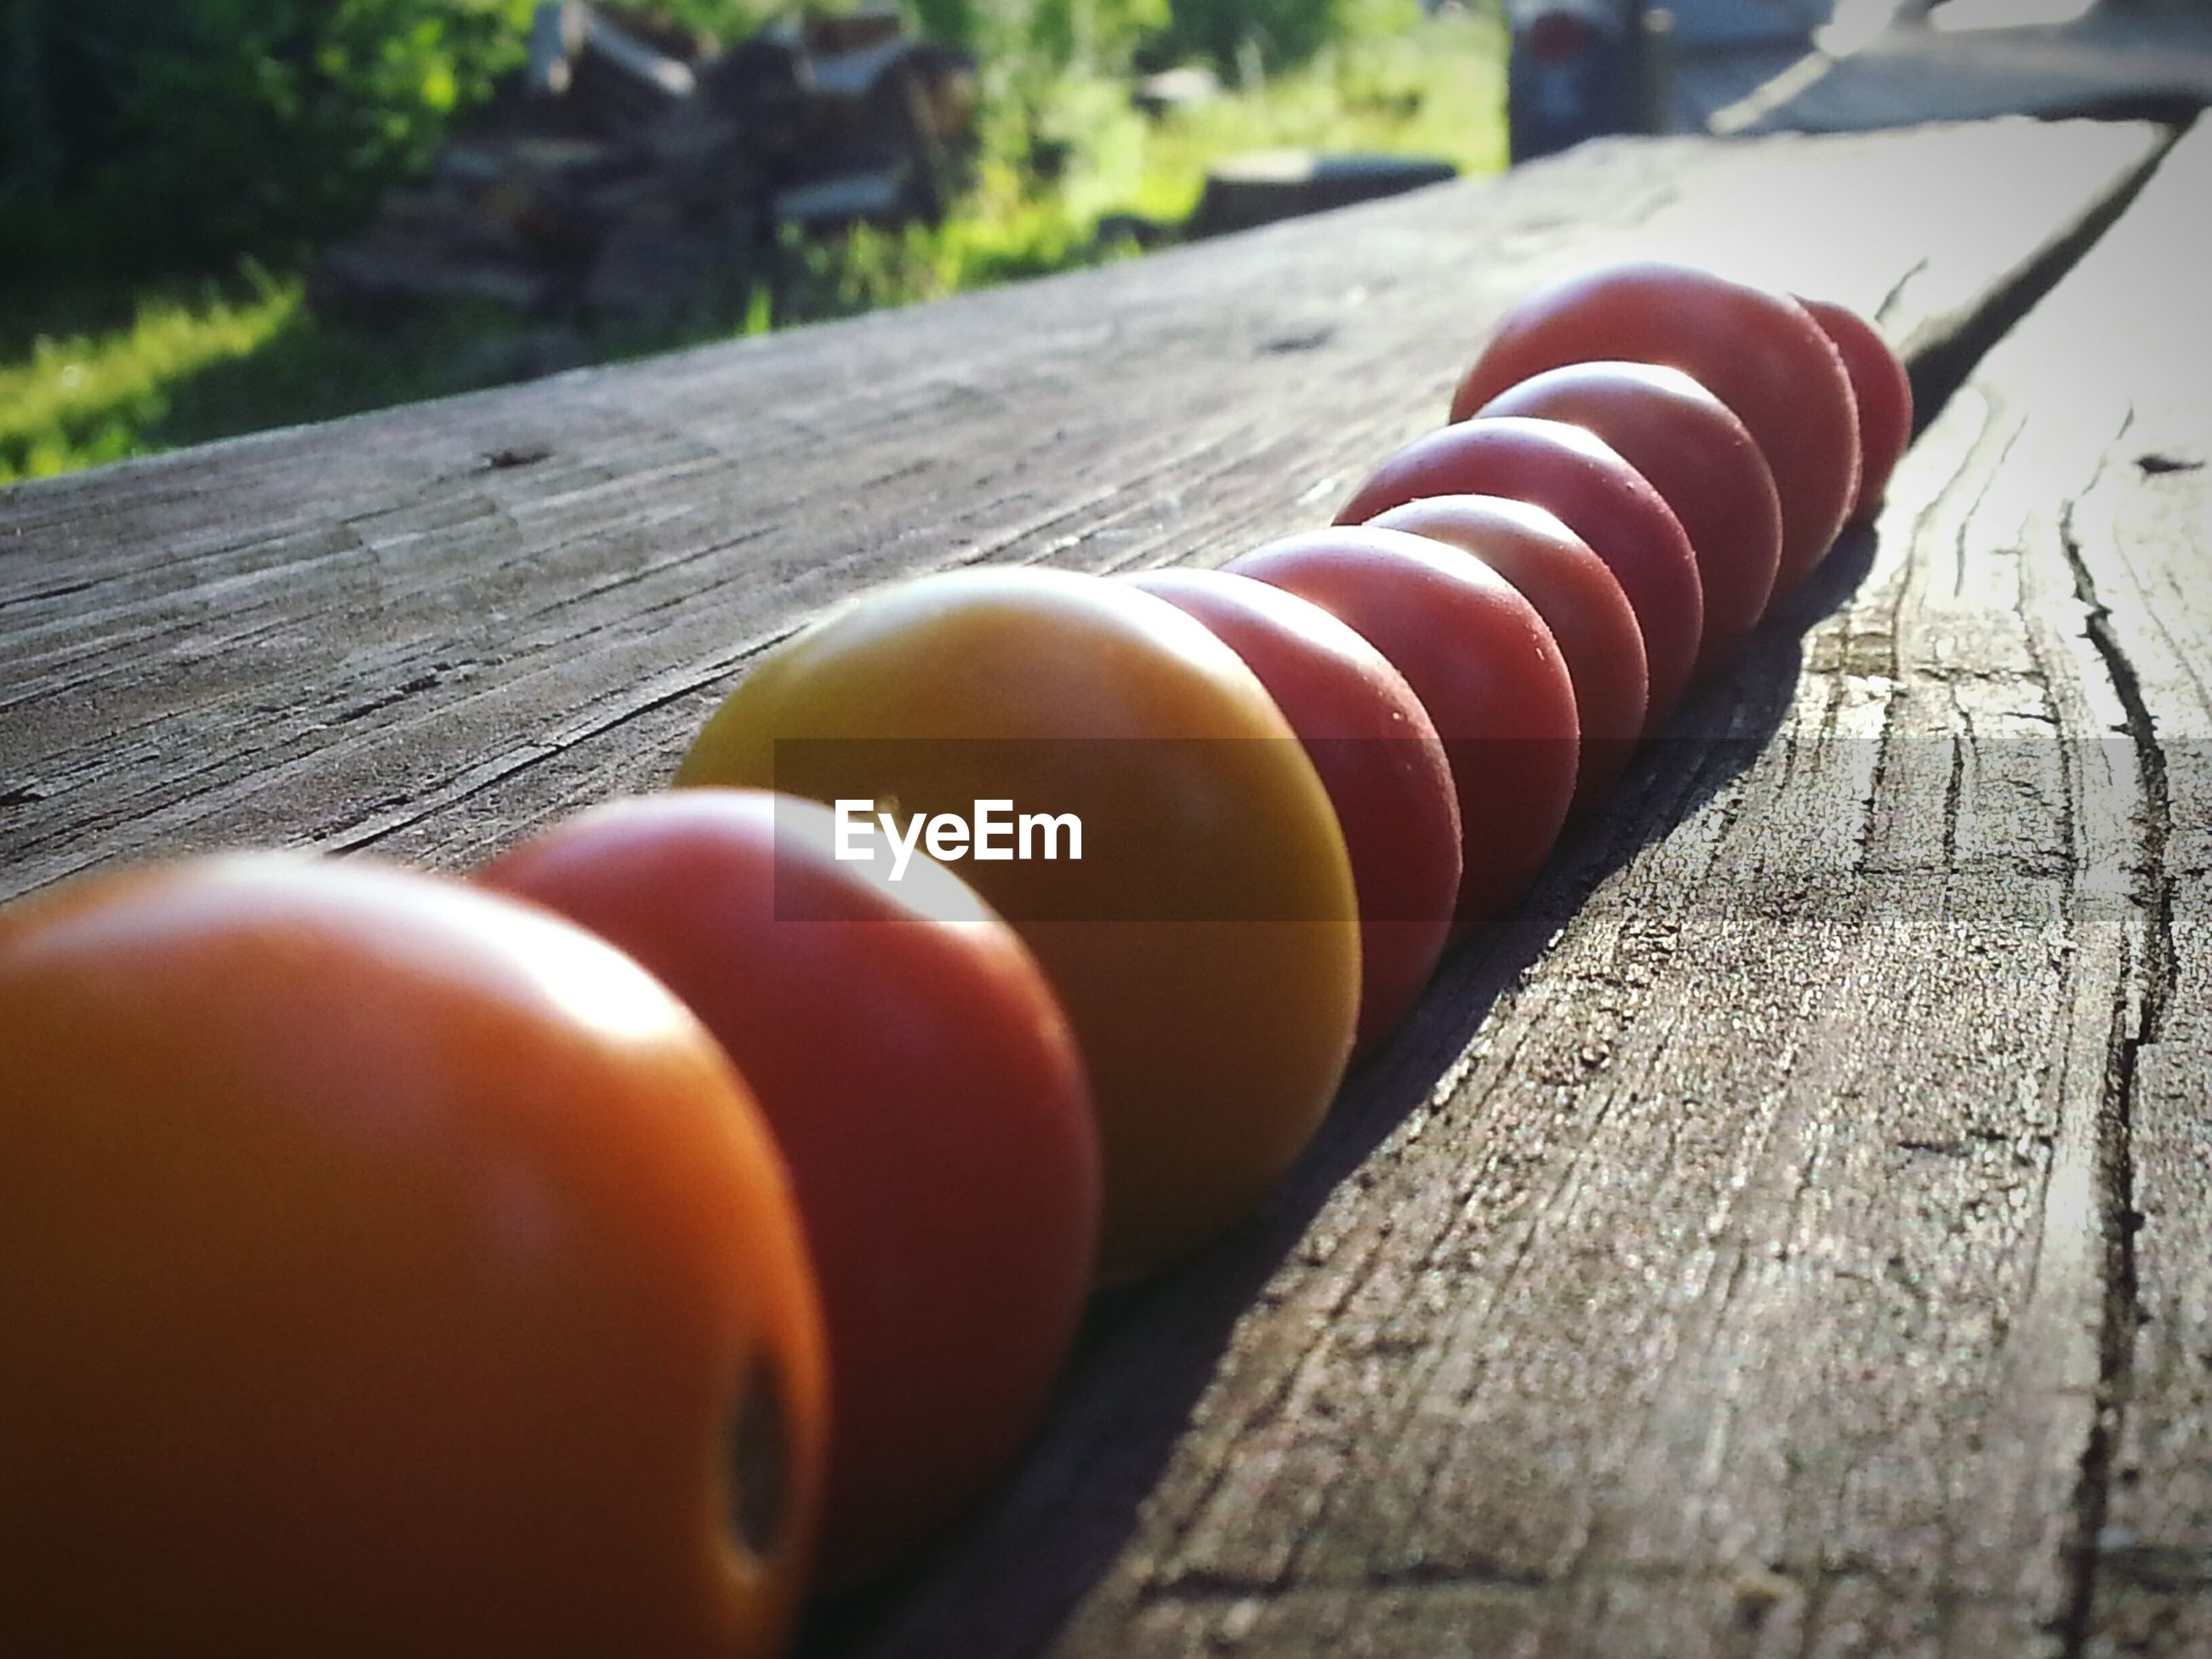 Tomatoes in a row on wooden table